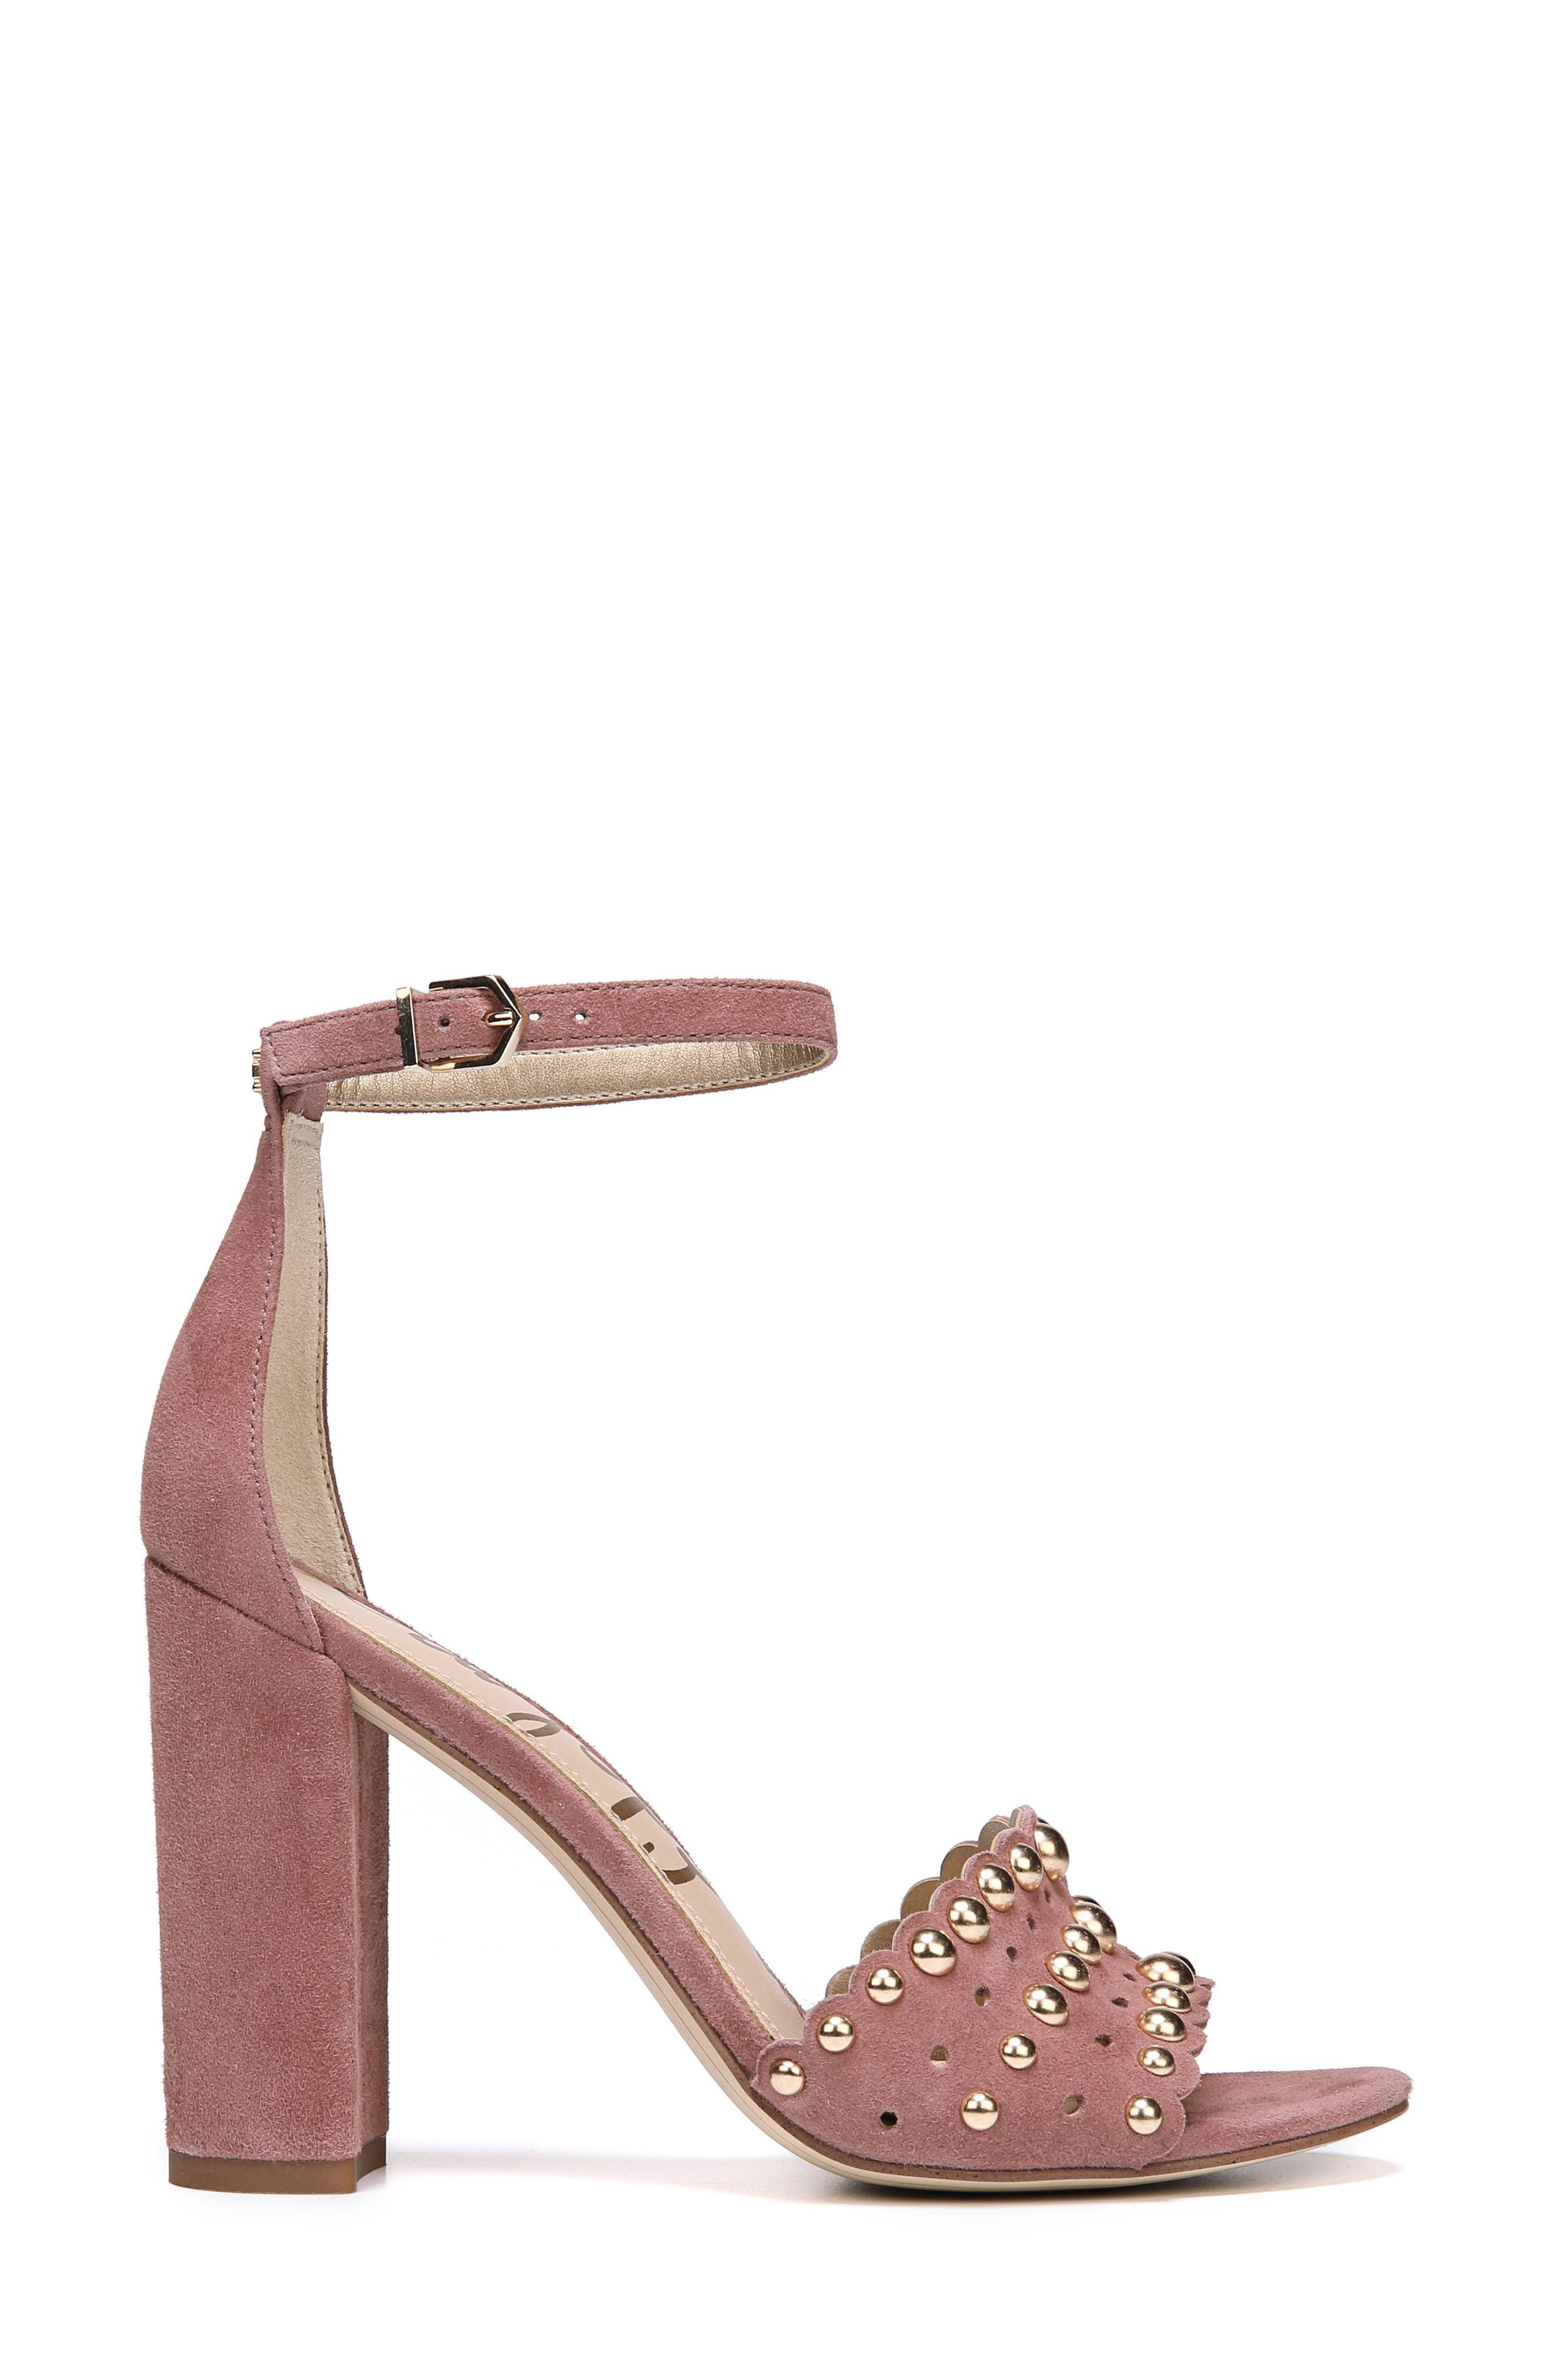 Yaria Studded Block Heel Sandal,                             Alternate thumbnail 3, color,                             Dusty Rose Suede